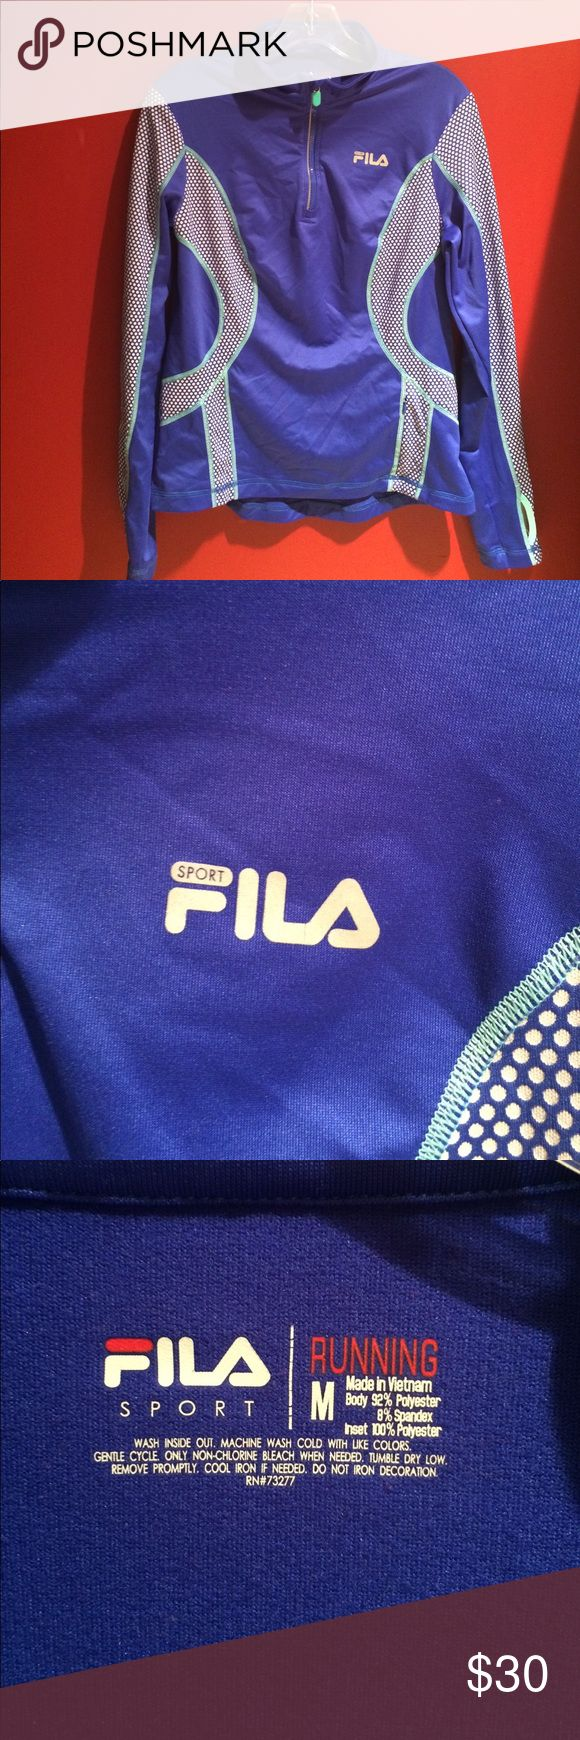 FILS sports running long sleeve 😍😍 Omg so comfortable size medium FILS sport running top so in right now color is amazing love it 😍😍😍great for running workouts or walk in the park😍😍 FILS Tops